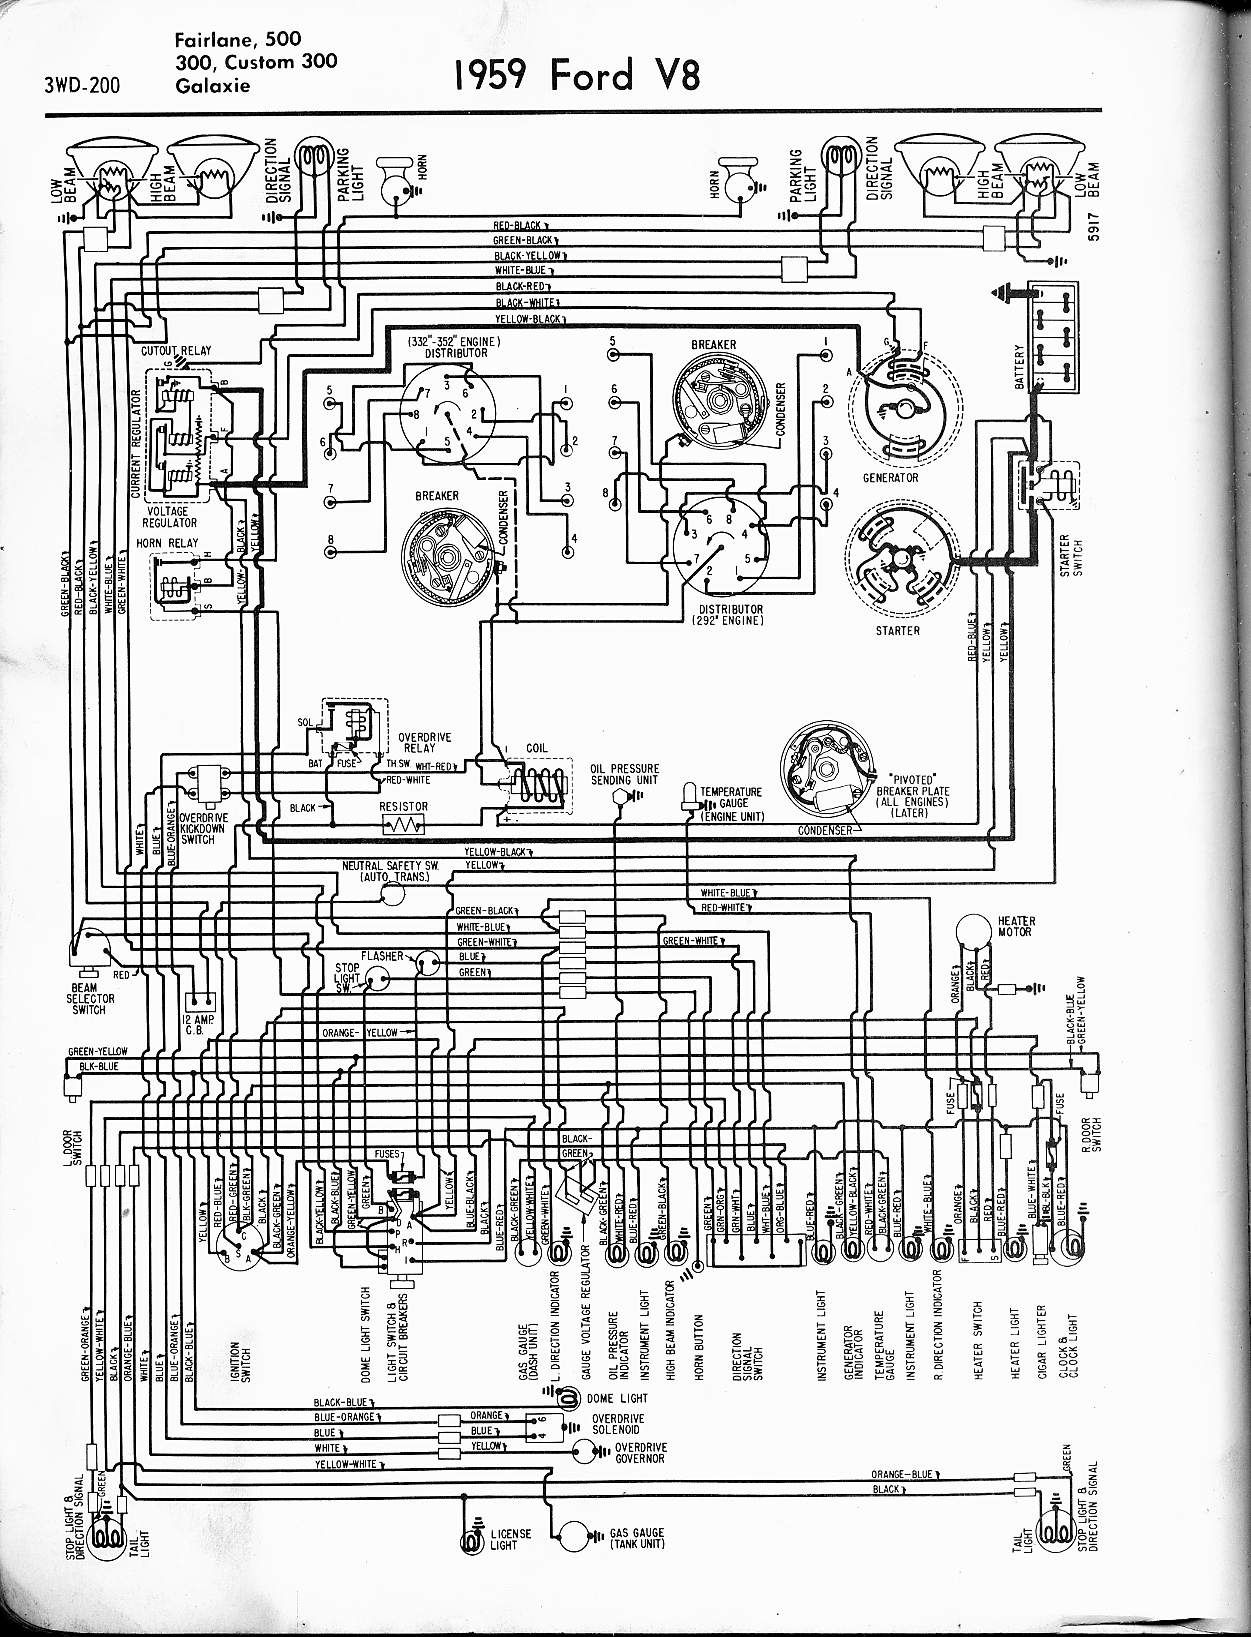 1956 buick century wiring diagram custom autosound wiring diagram diagram design  diagram  custom autosound wiring diagram